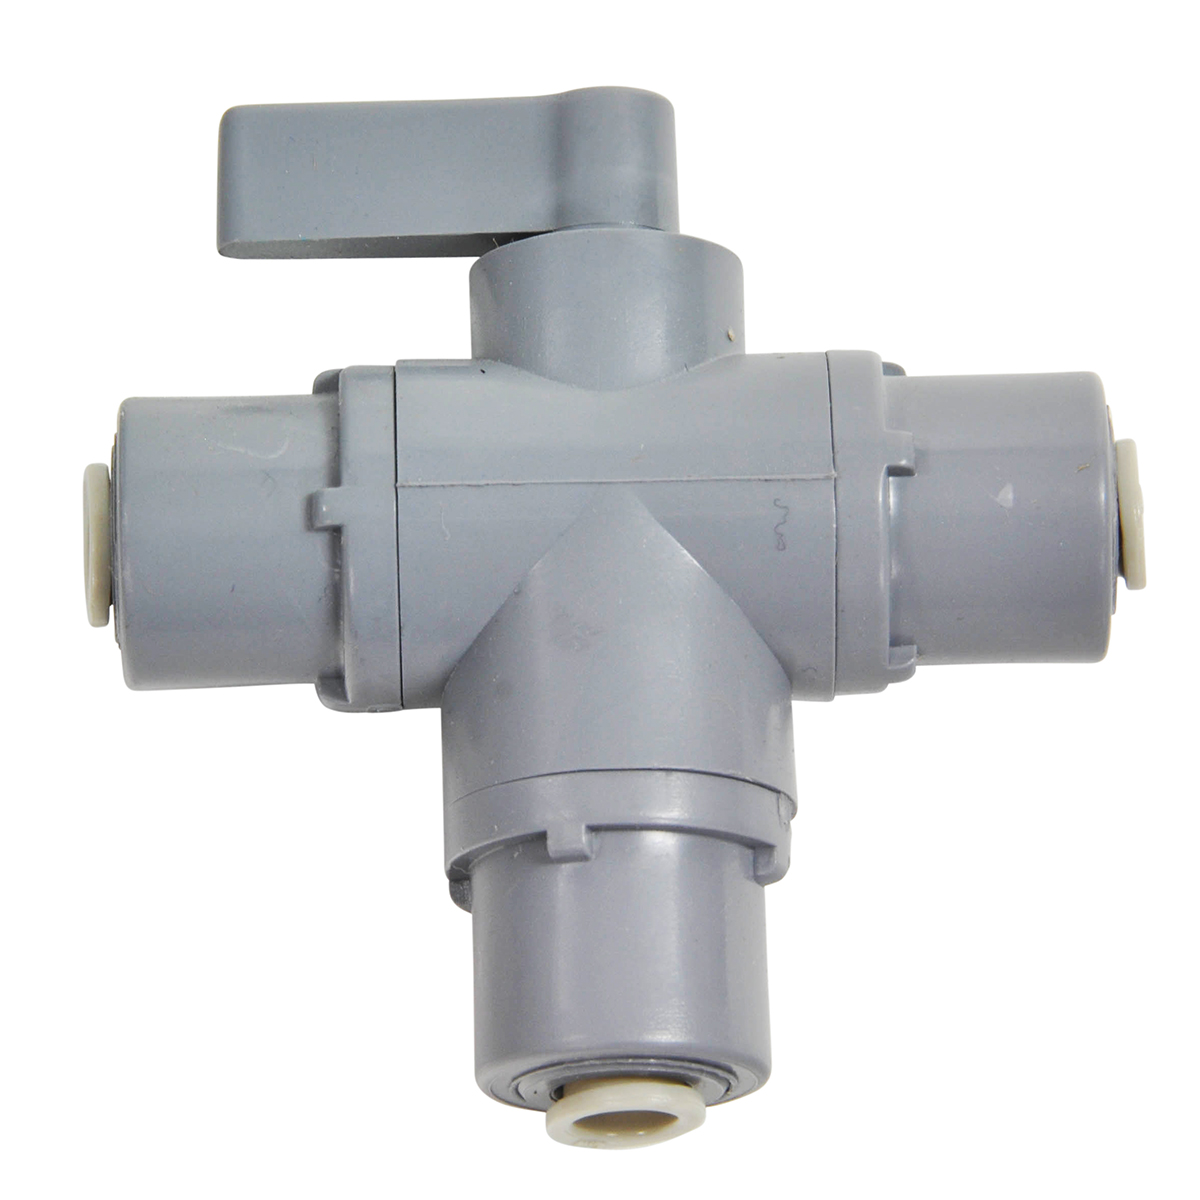 3 Way Ball Valve With John Guest 1 4 Quot Push Connect Bulk